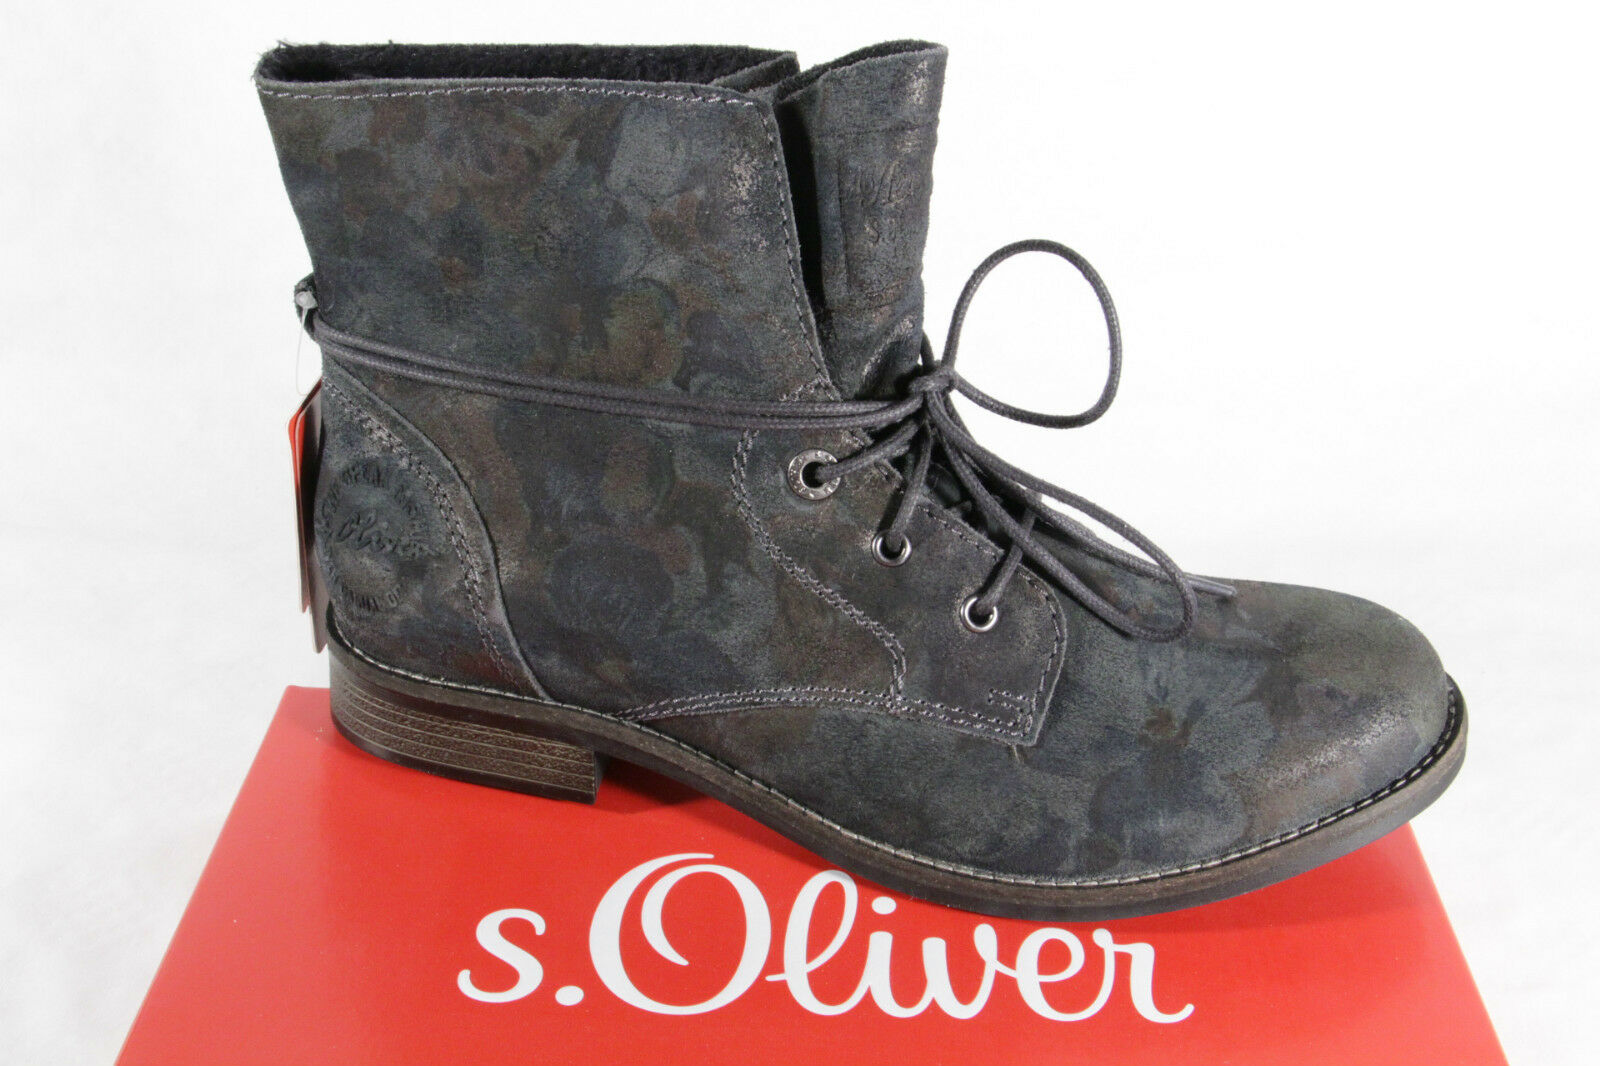 S.Oliver Boots, Real leather, grey/ multicolour, padded 25203 NEW